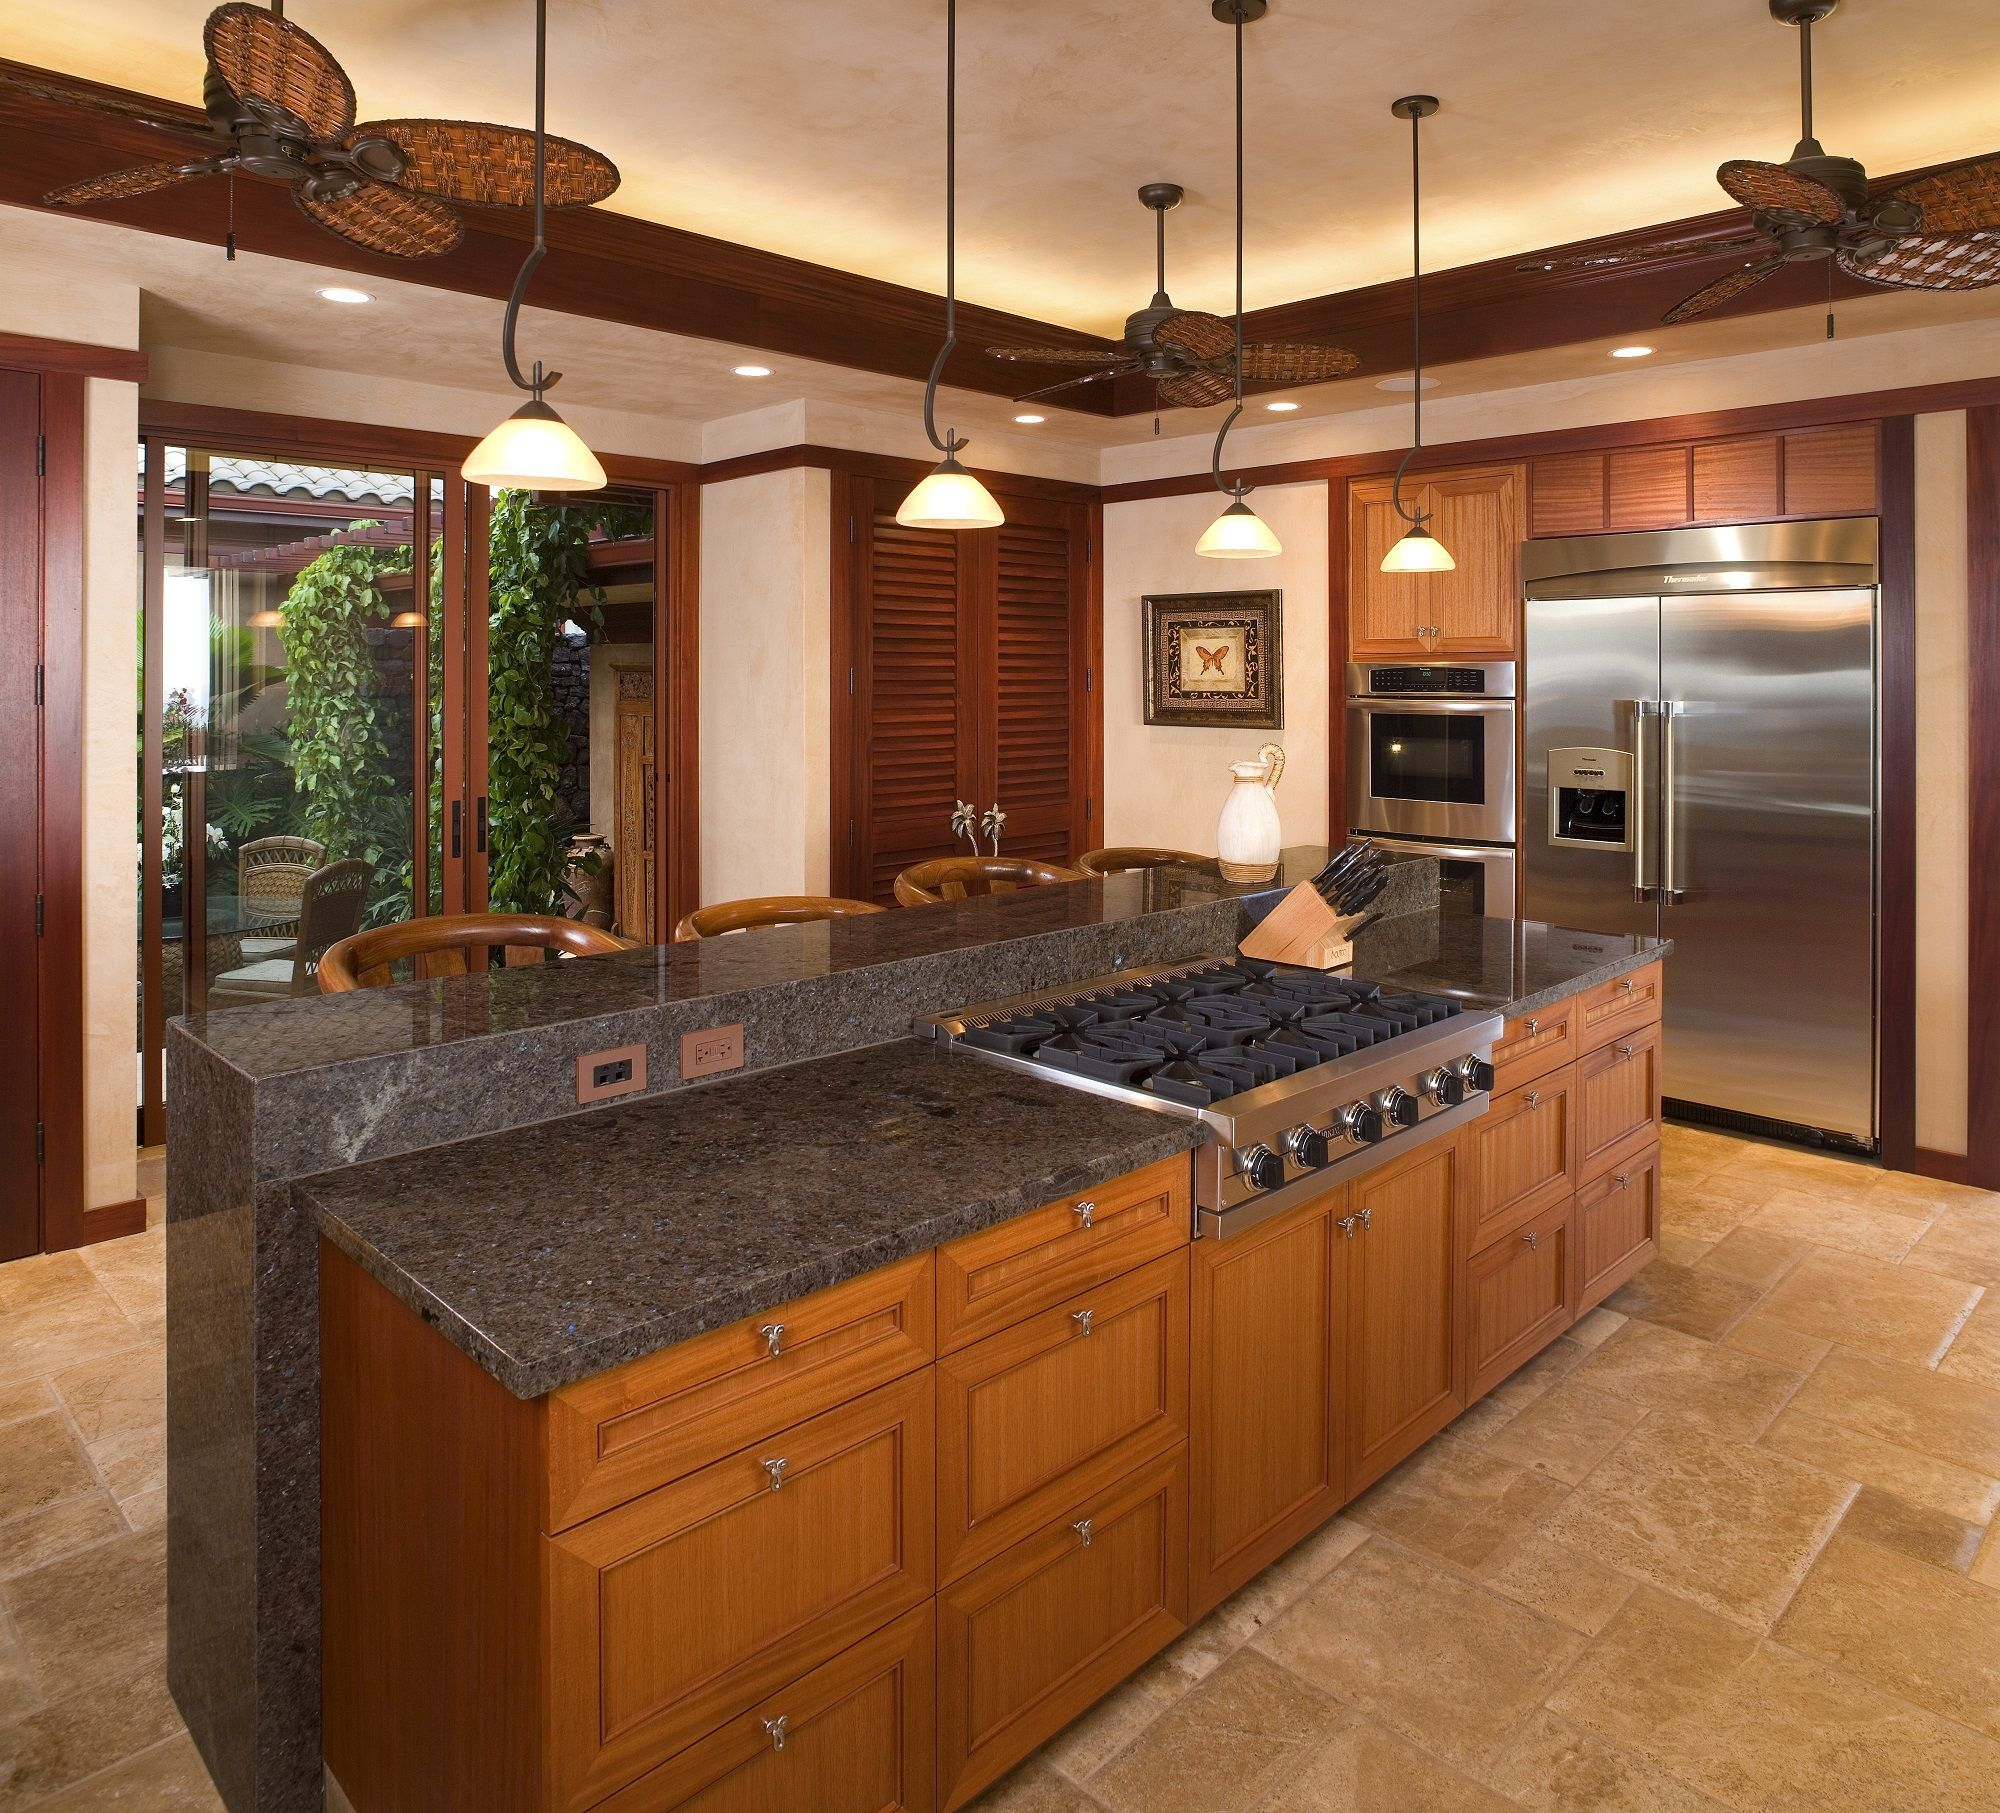 The Latest Kitchen Floor Trends You Must Know (With images ...